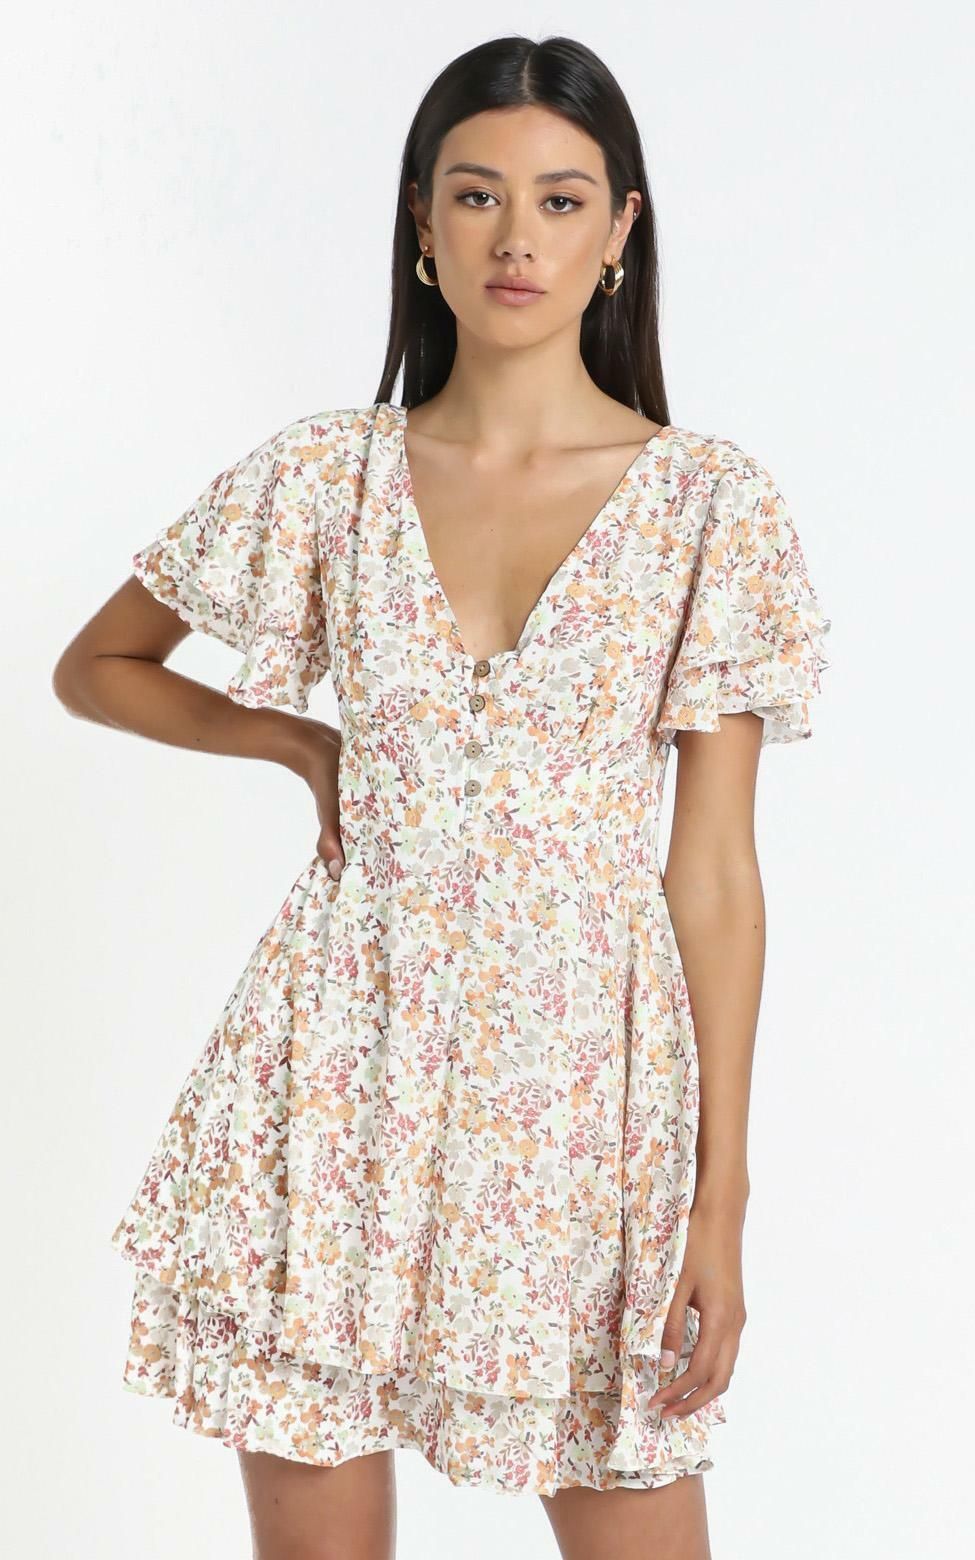 Tahlia Dress in Multi Floral - 14 (XL), , hi-res image number null